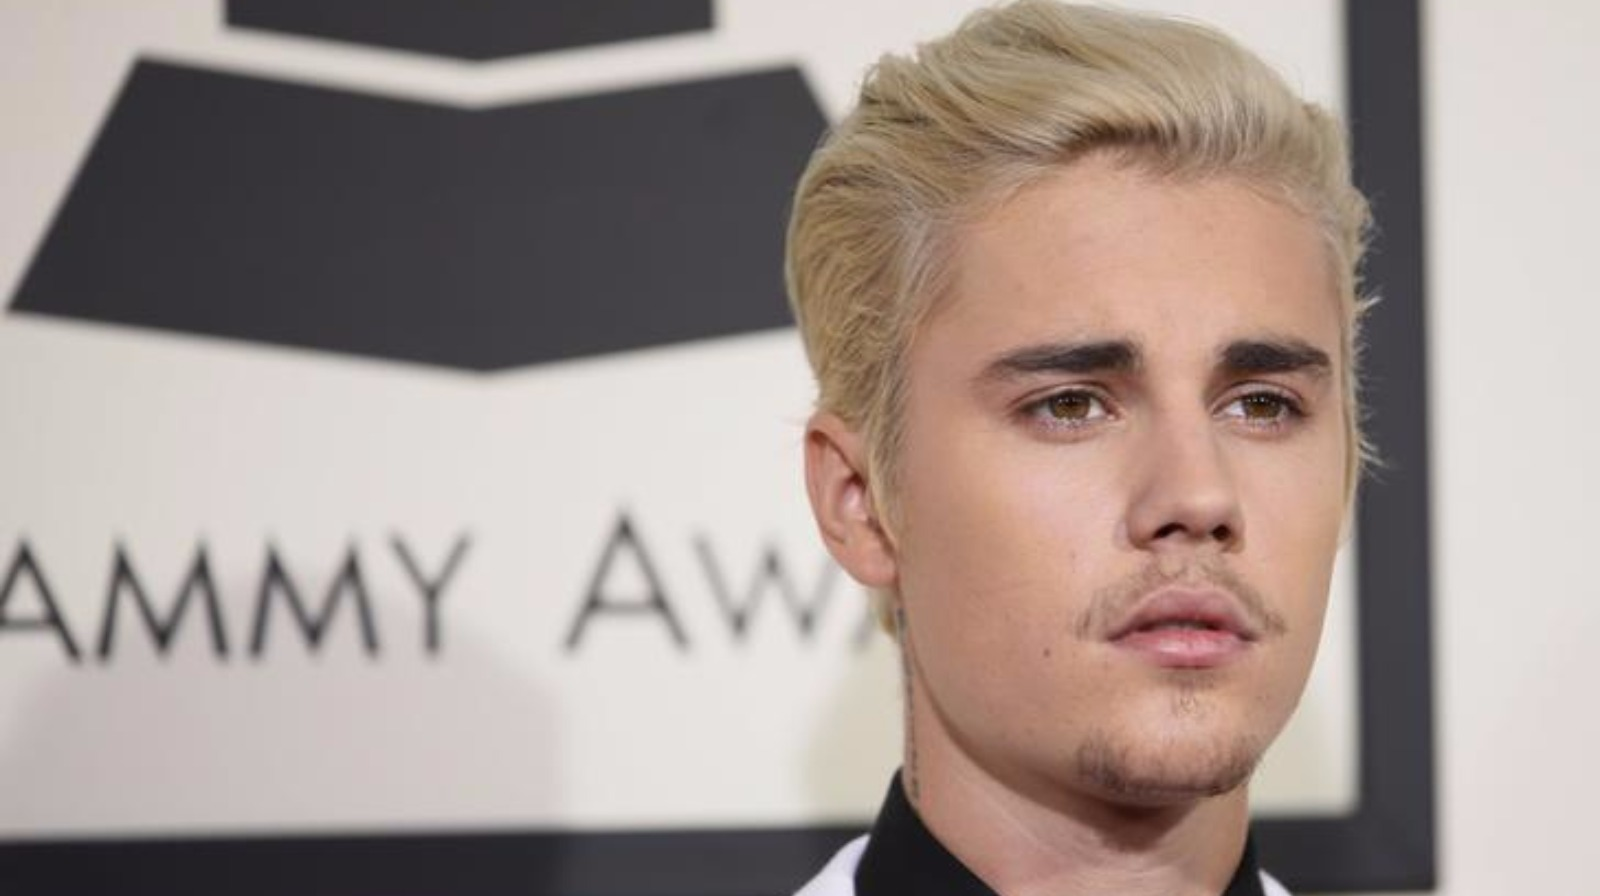 Unhappy justin bieber stops draining fan meet and greets itv news m4hsunfo